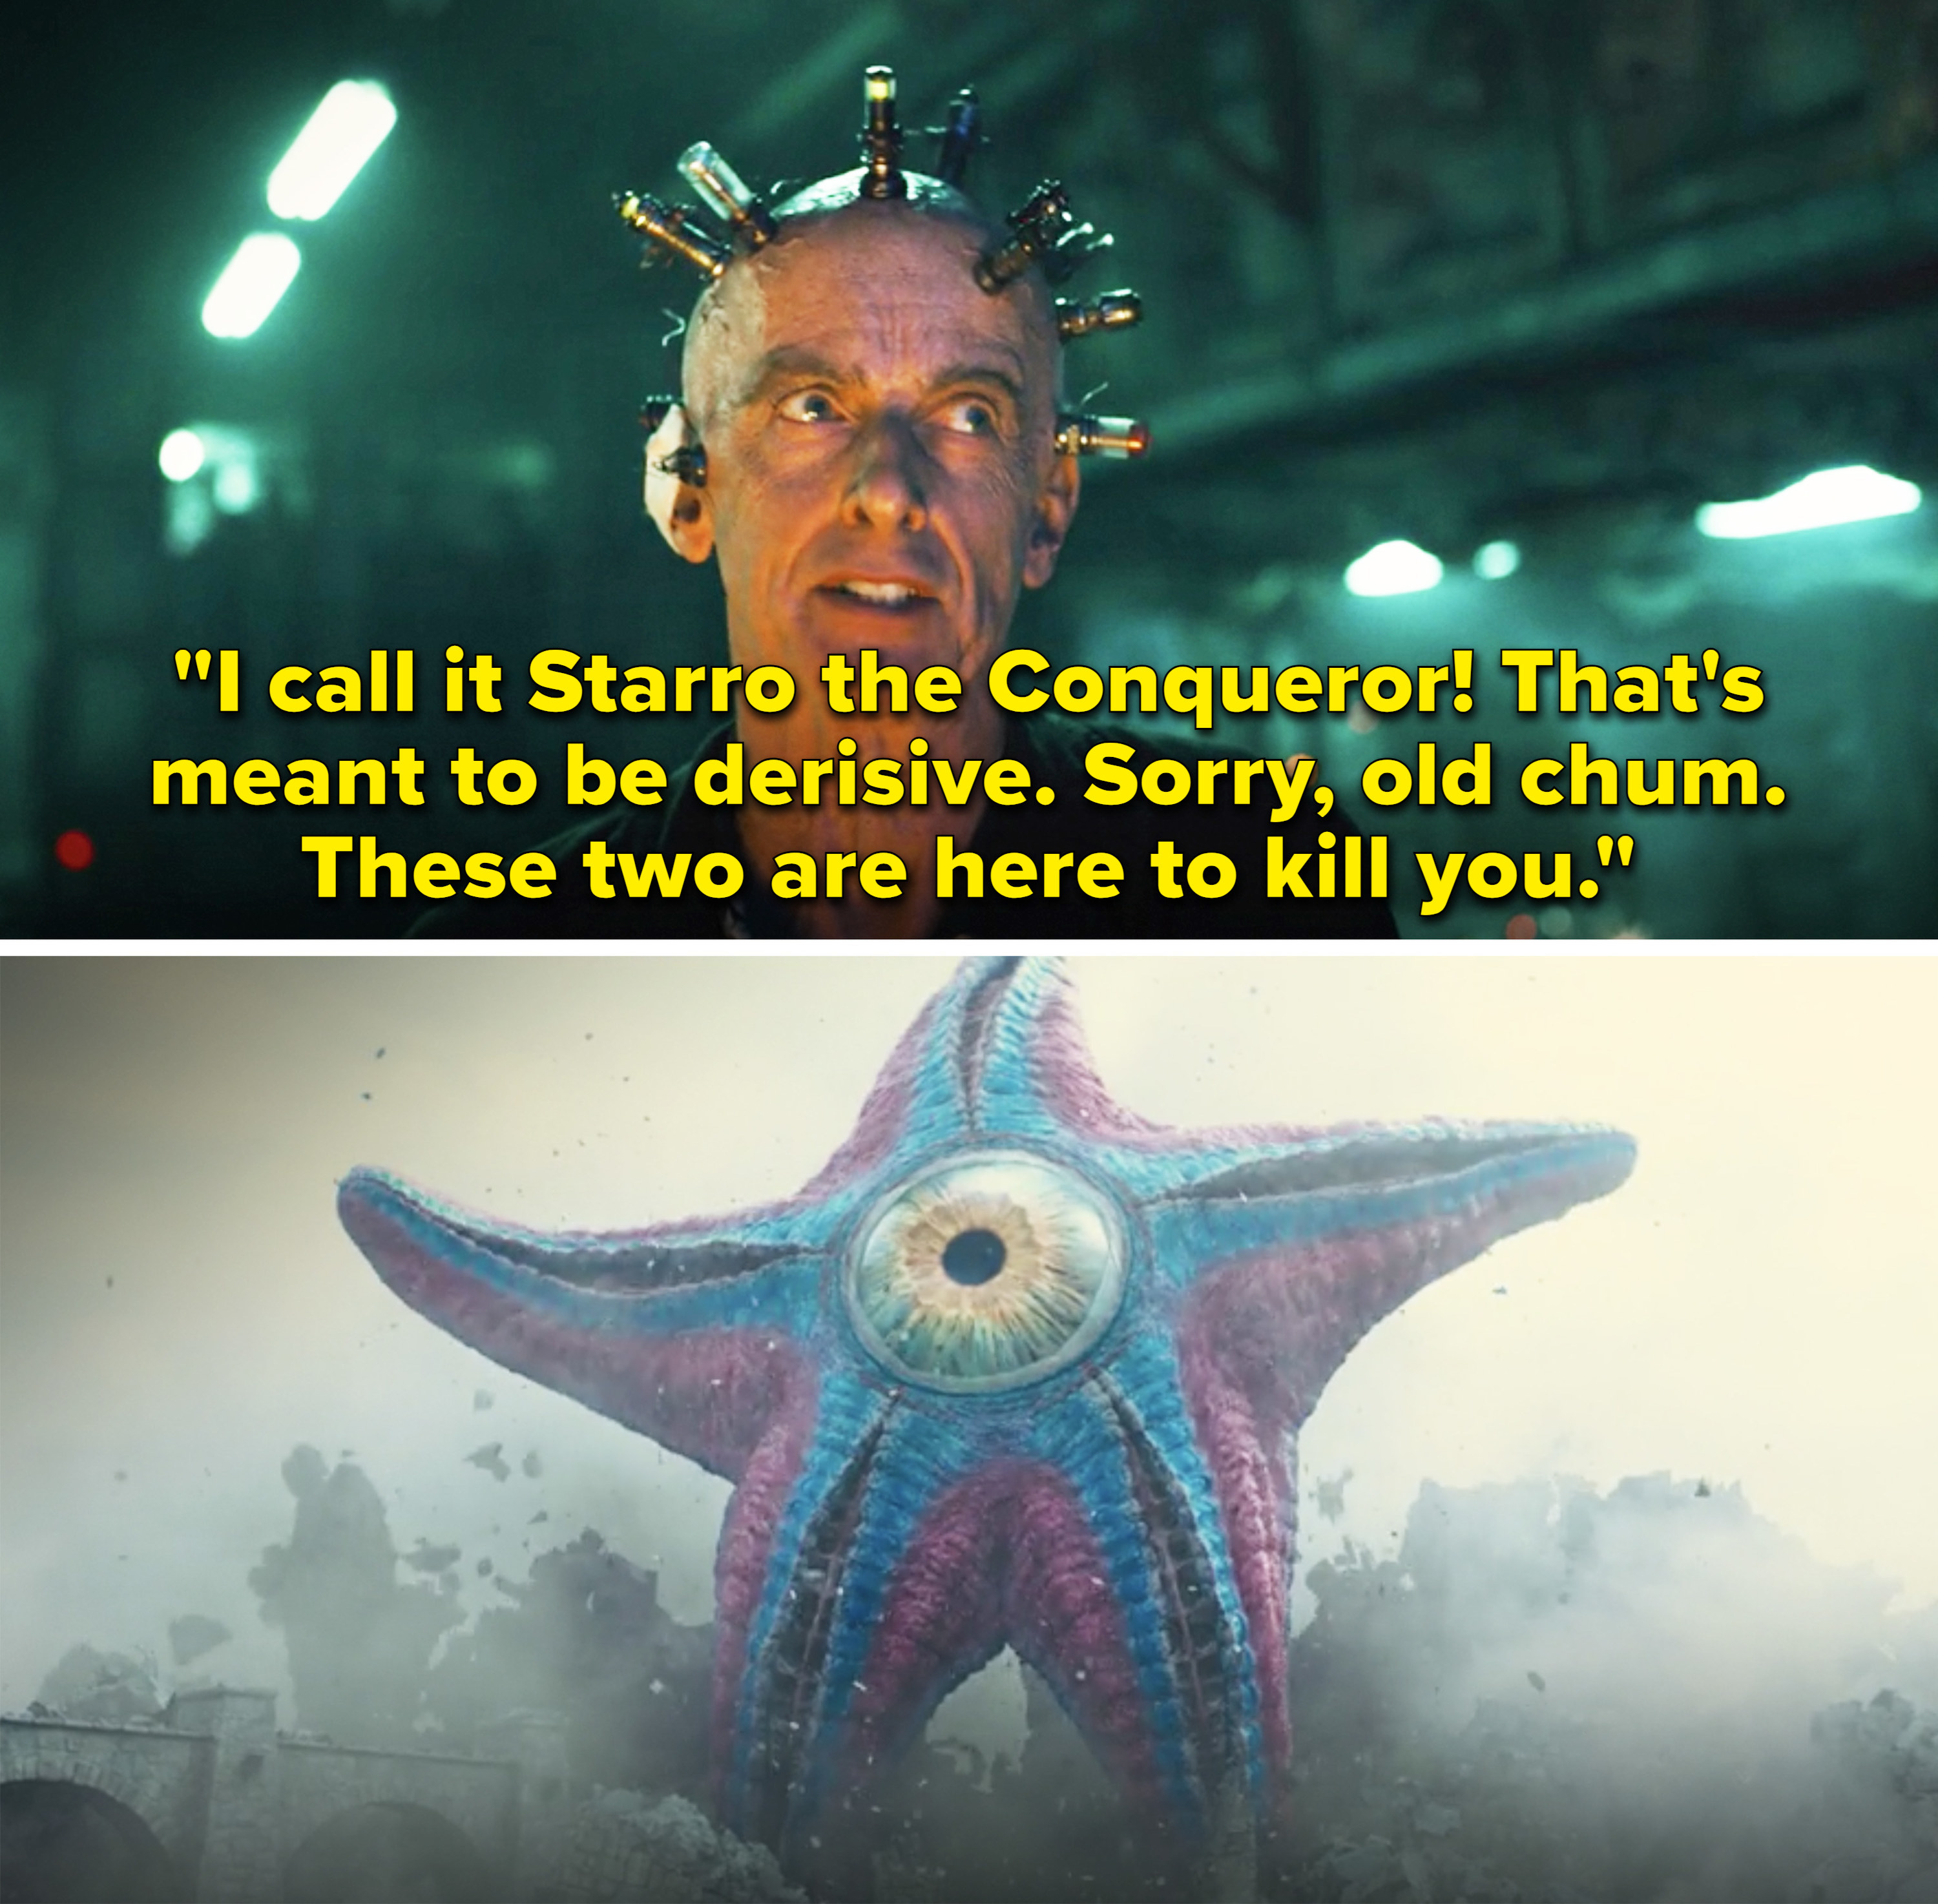 """Thinker saying,""""I call it Starro the Conqueror! That's meant to be derisive. Sorry, old chum. These two are here to kill you"""""""